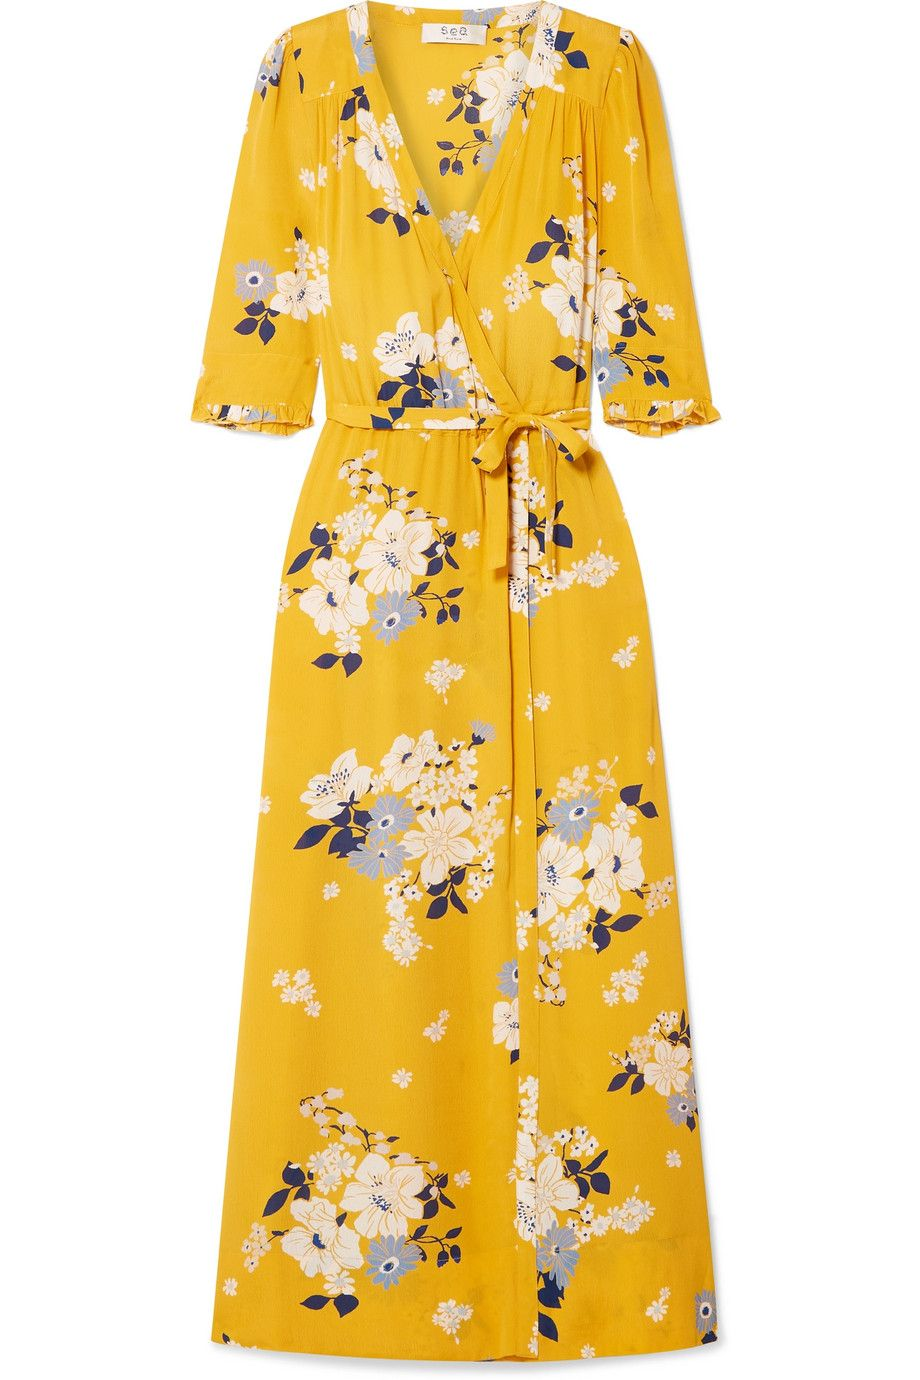 """Pia Floral-Print Wrap Dress Sea net-a-porter.com $255.50 SHOP NOW """"I've been Goldilocks-ing for a work-appropriate floral dress for a while now. I've tried on what feels like hundreds and they're all either too bright, too busy, or too juvenile. This one with its muted palette, sophisticated silhouette, and vintage vibe seems just right.""""— Katie Conner, ELLE.com Site Director"""